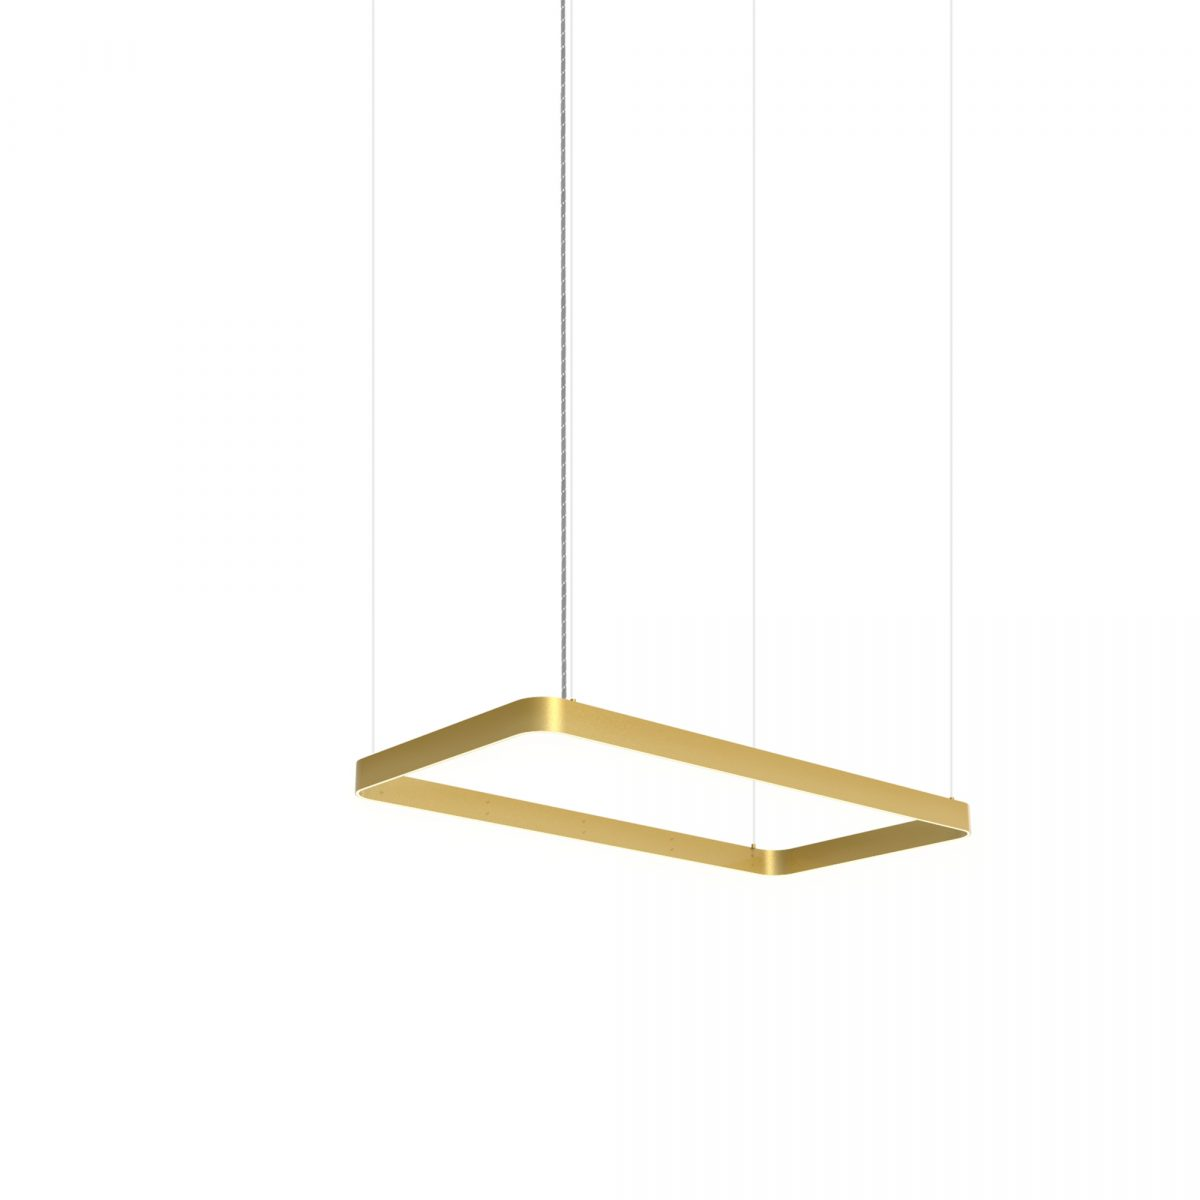 JSPR Eden 50×100 Gold Rectangle